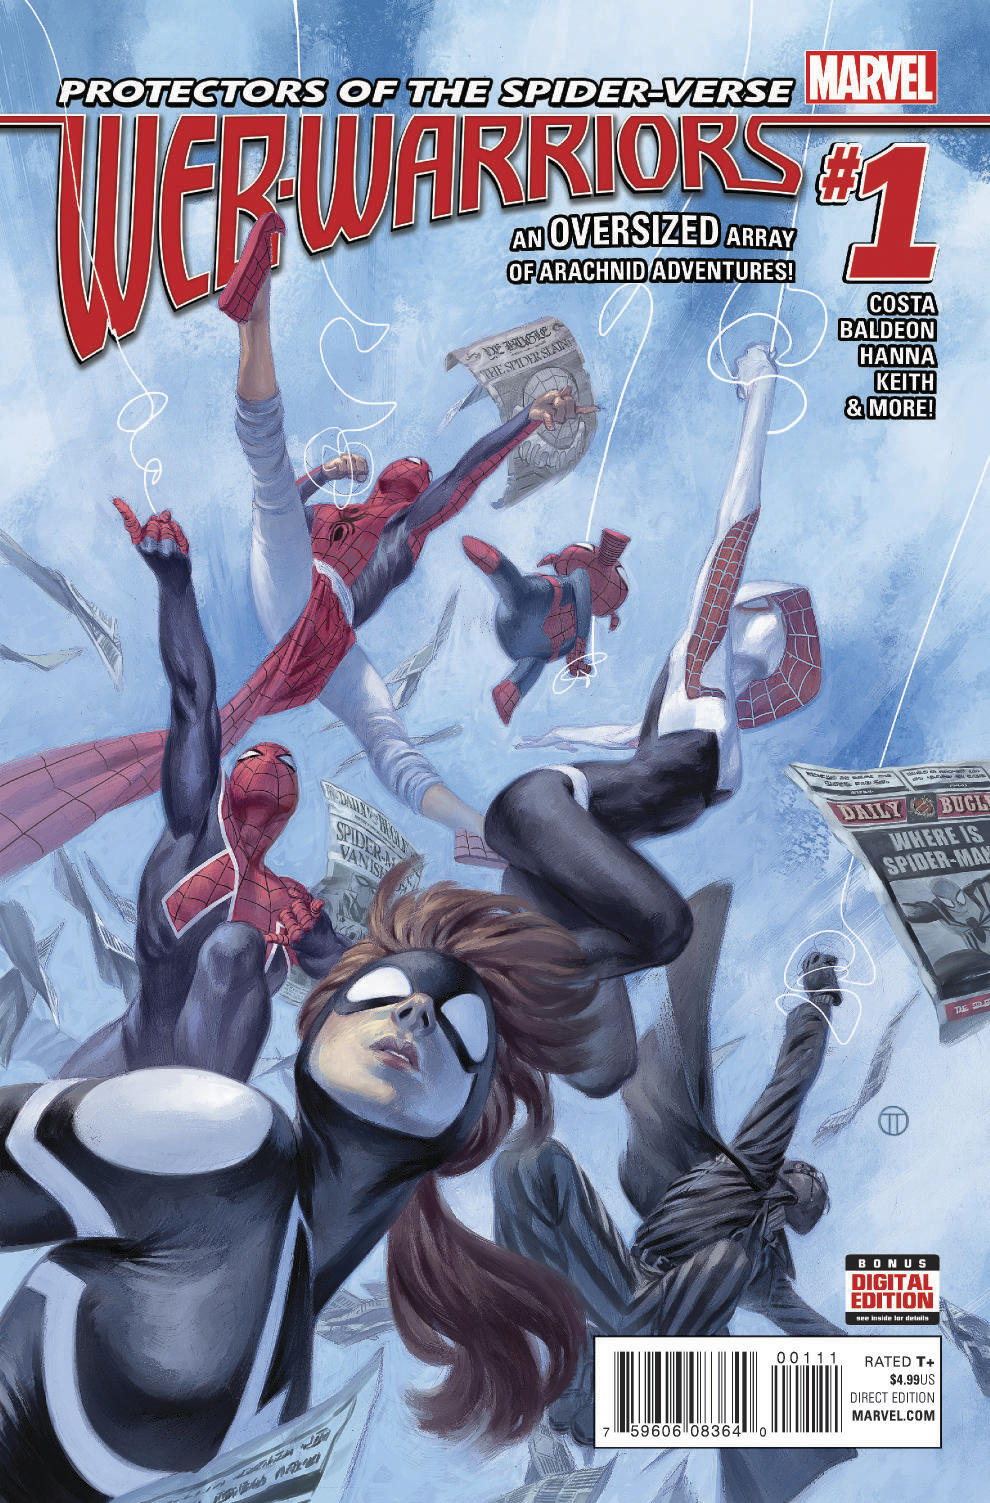 Meet the Heroes of the Spider-Verse in WEB WARRIORS #1!